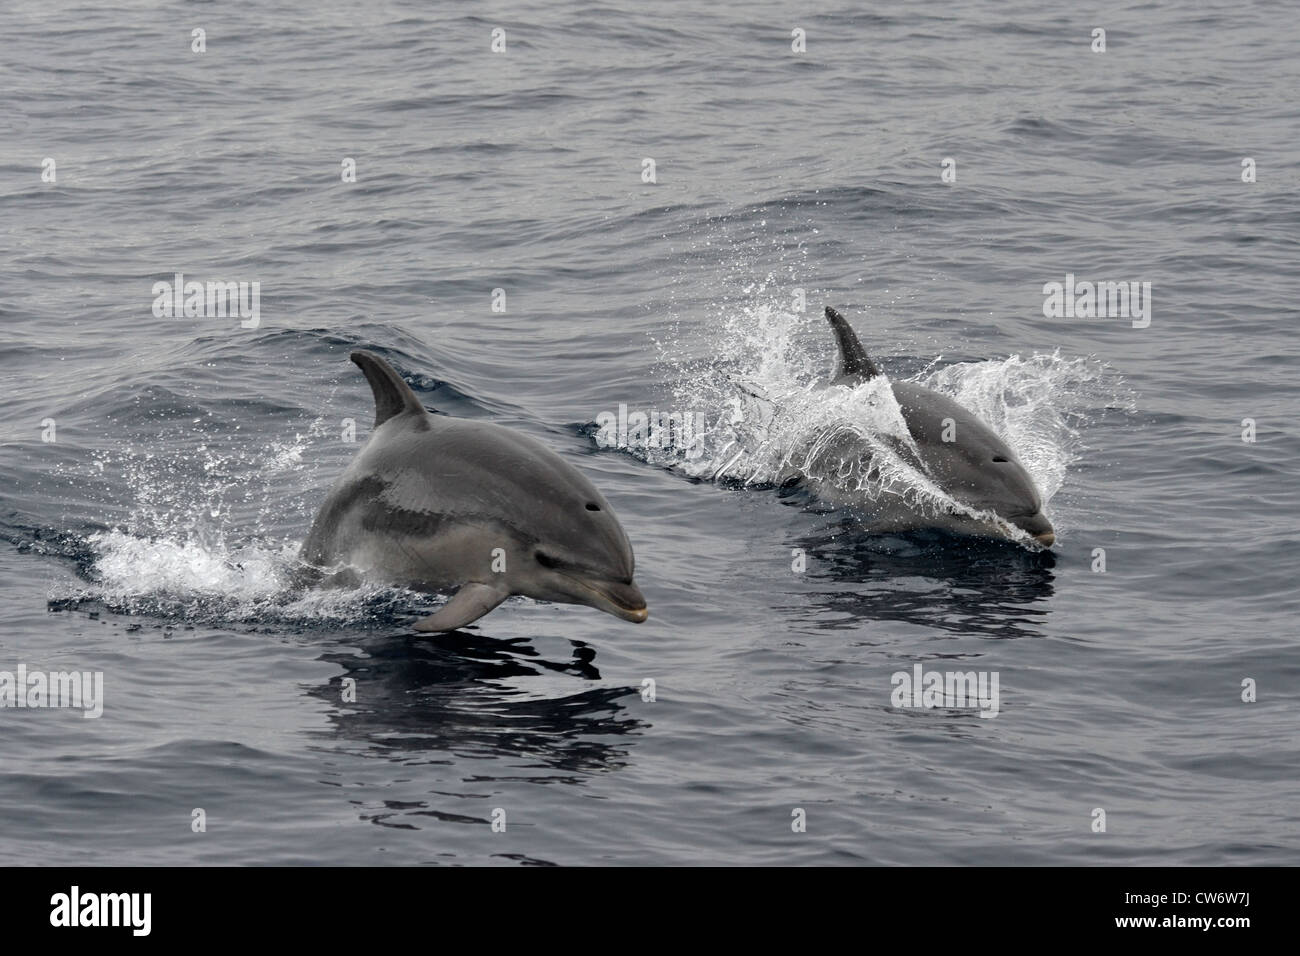 Common Bottlenose Dolphins, Tursiops truncatus, two dolphins surface simultaneously, Azores, Atlantic Ocean. - Stock Image